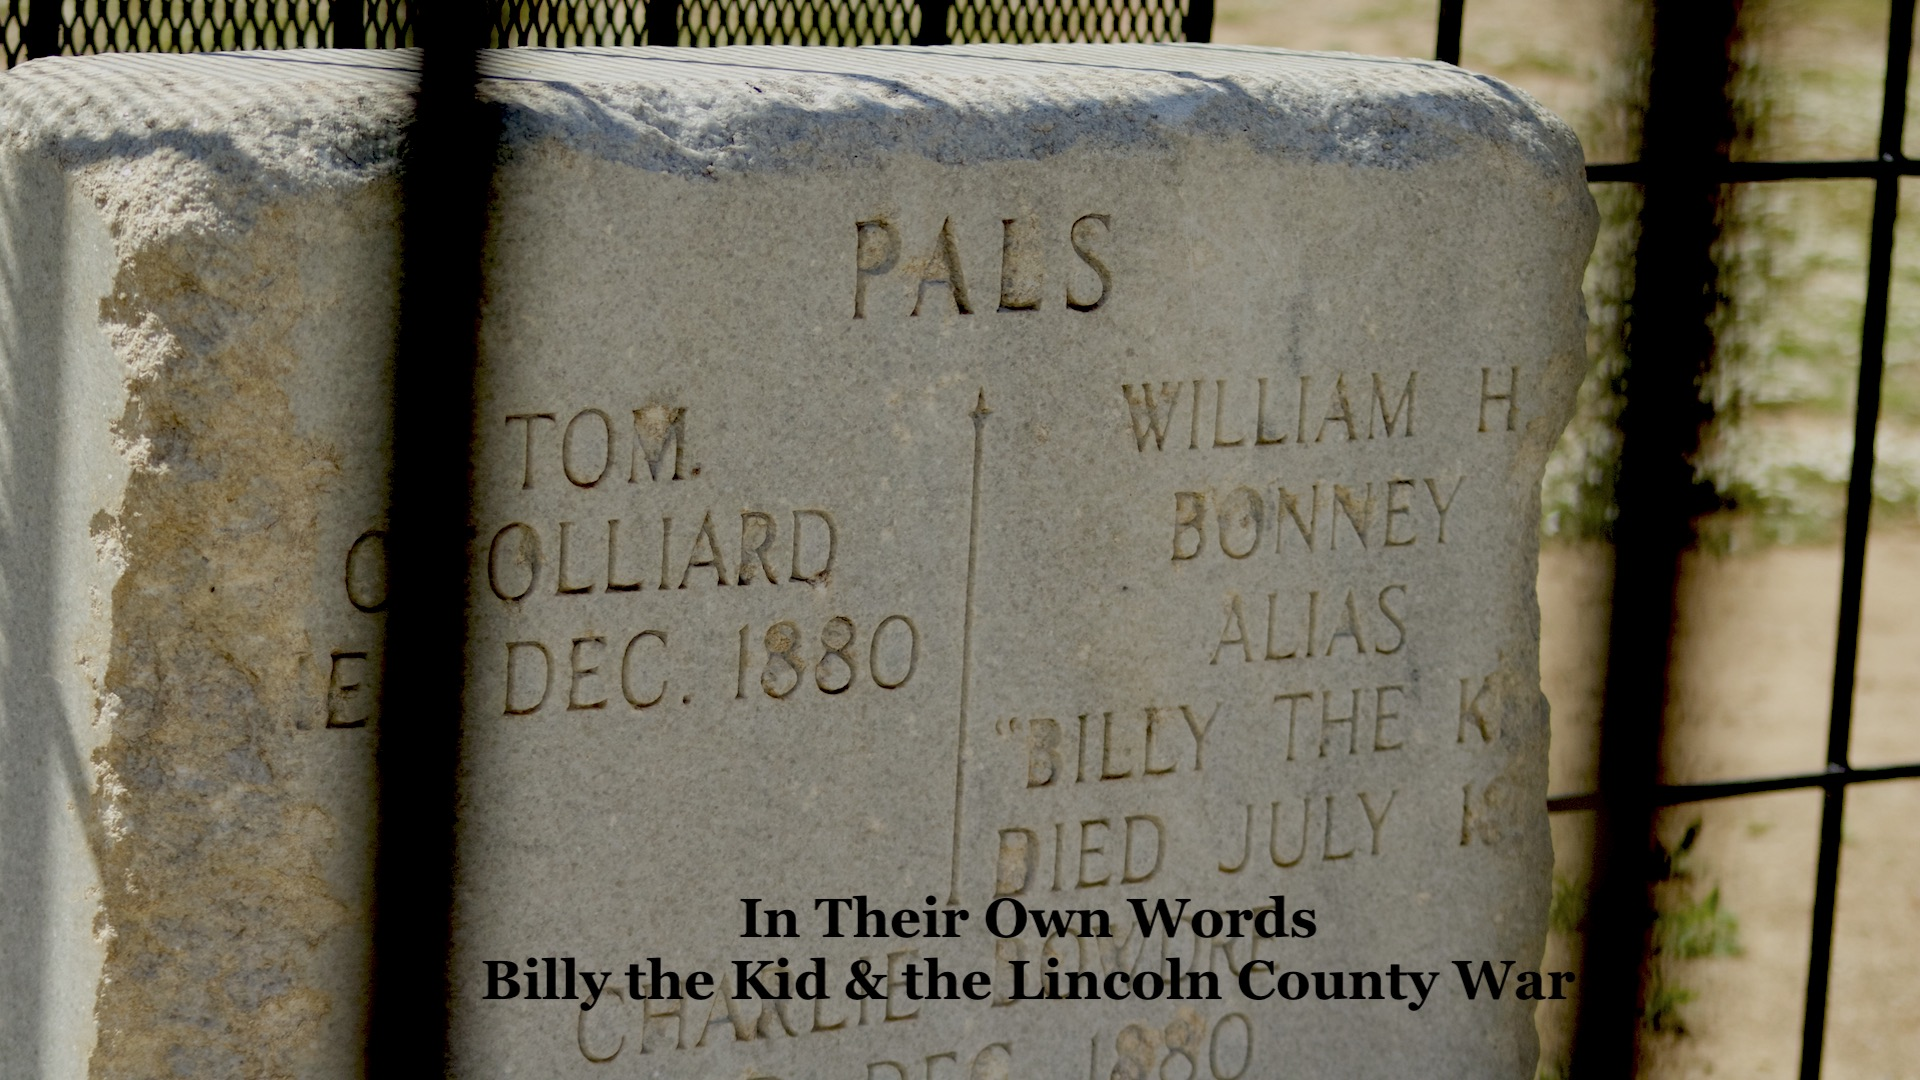 Billy the Kid & the Lincoln County War